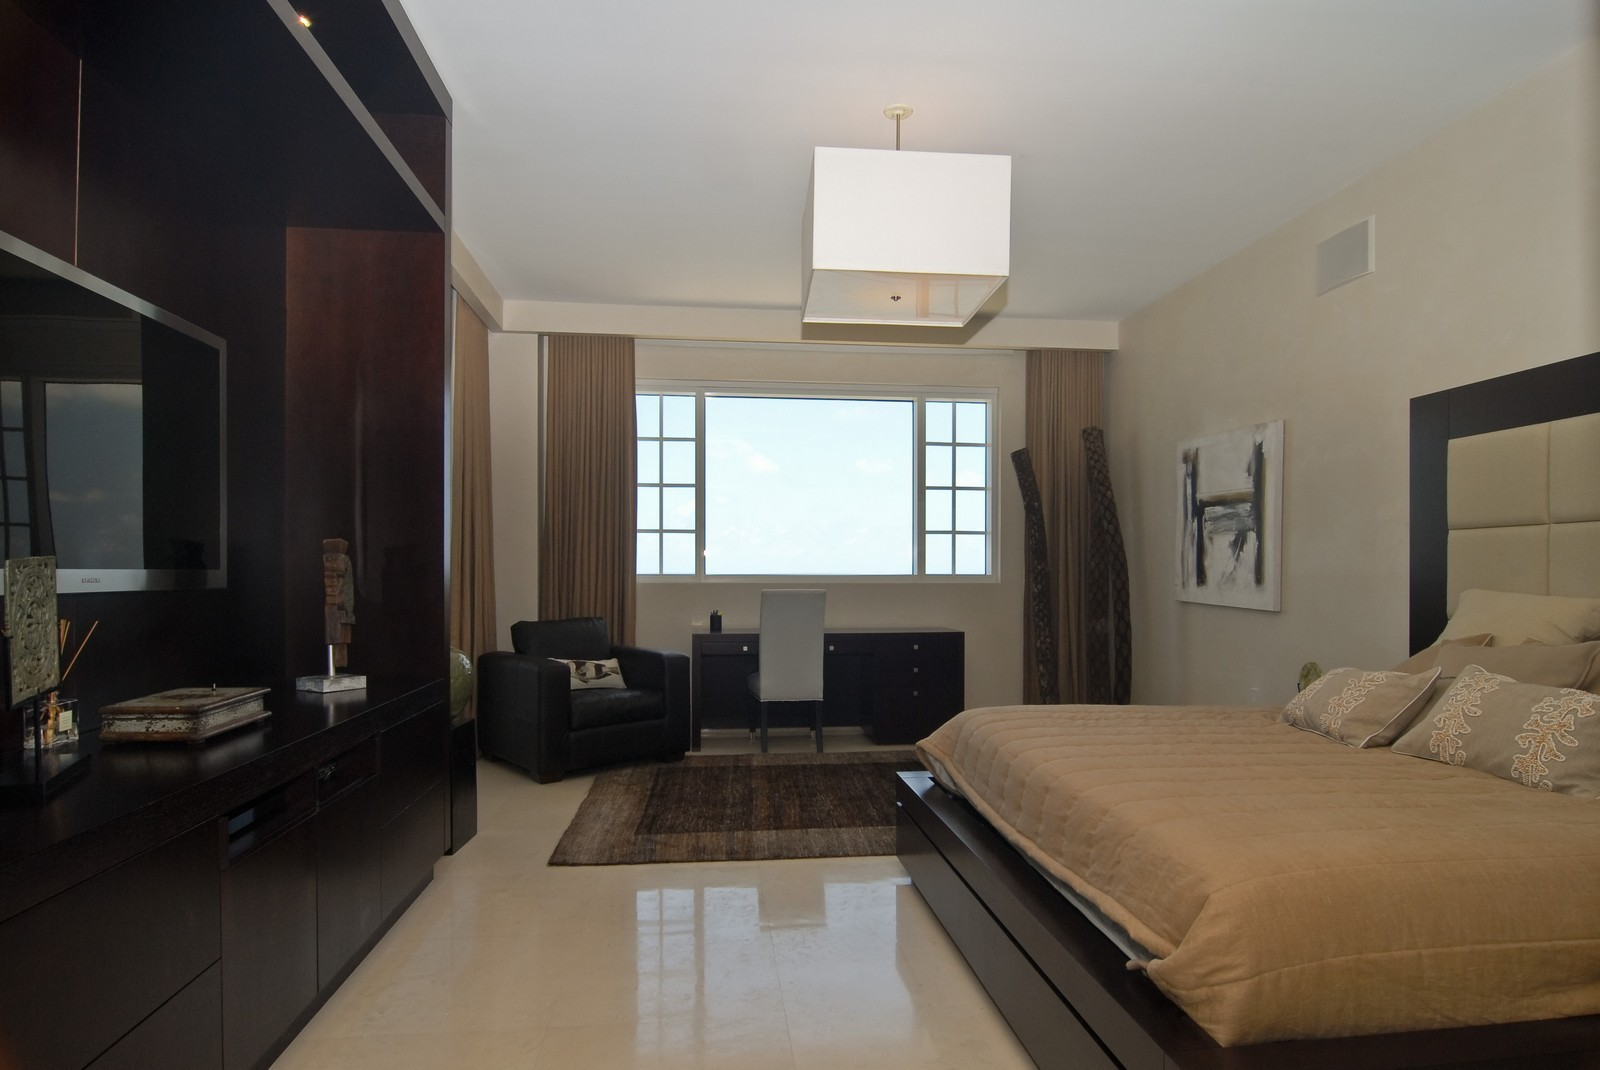 Real Estate Photography - 7161 Fisher Island Drive, Miami Beach, FL, 33109 - Master Bedroom